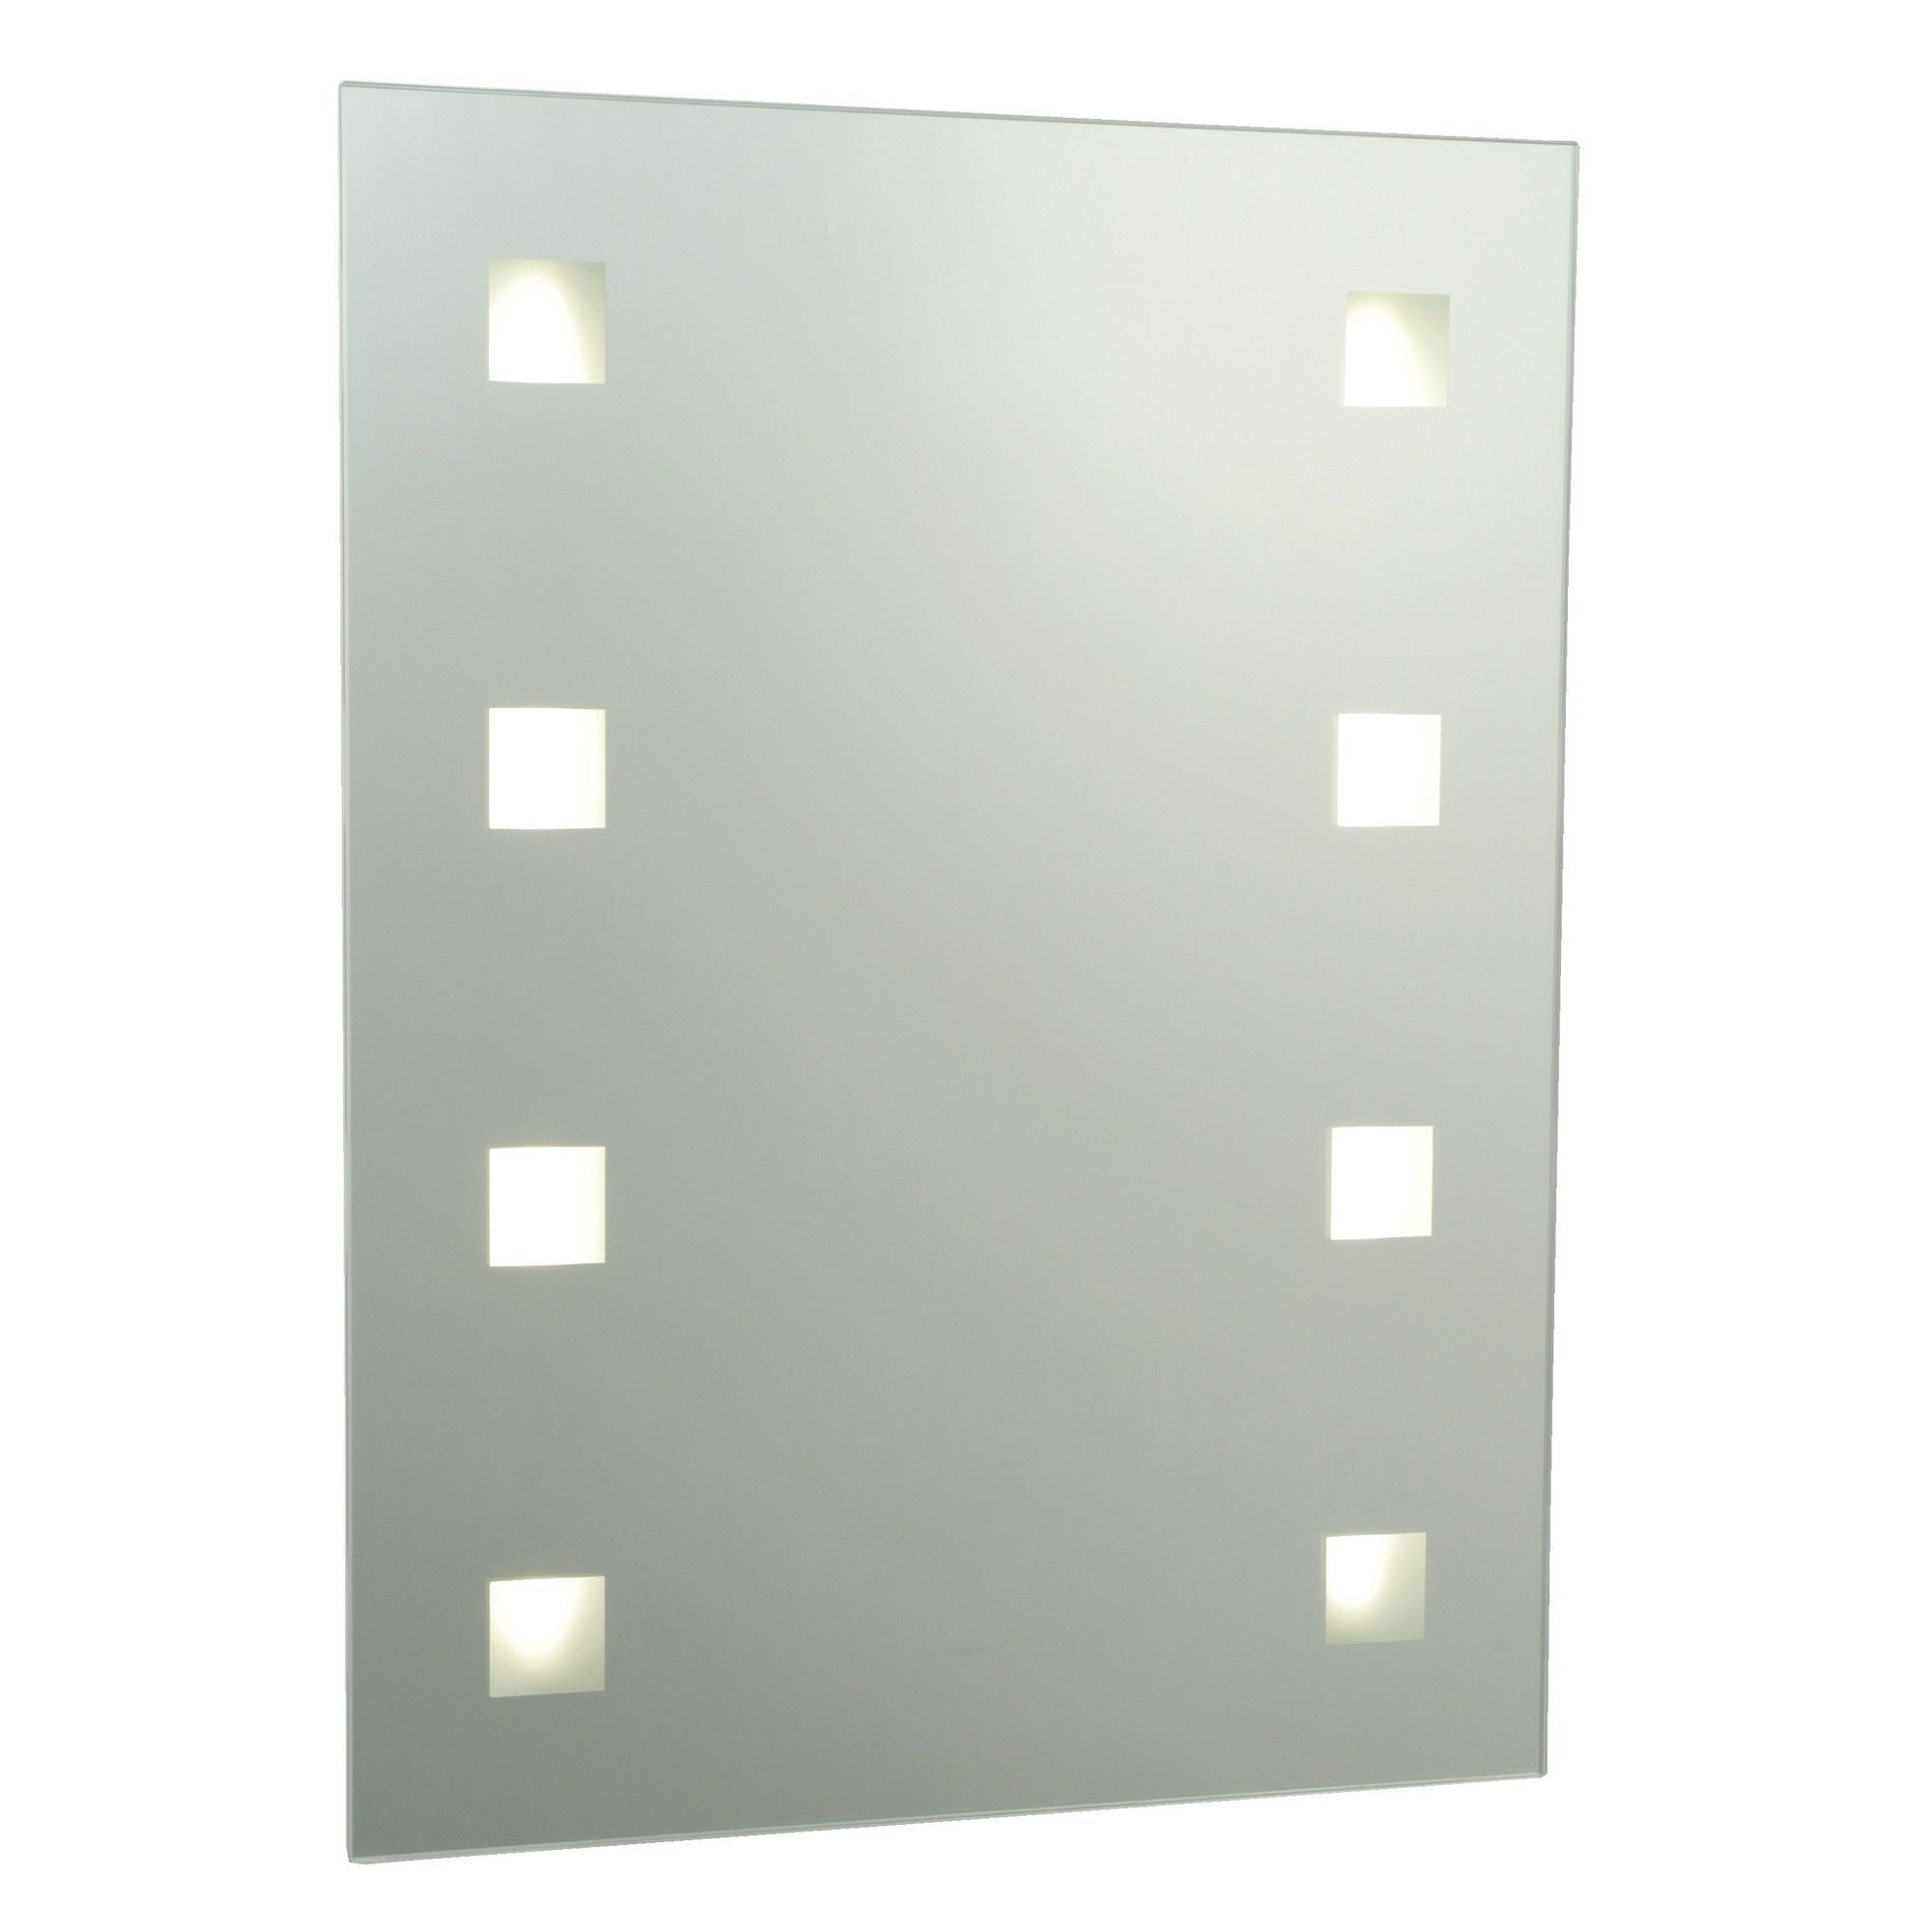 Cooke and lewis bathroom mirrors - Cooke Lewis Tajo Illuminated Rectangular Mirror W 450mm H 600mm Departments Diy At B Q